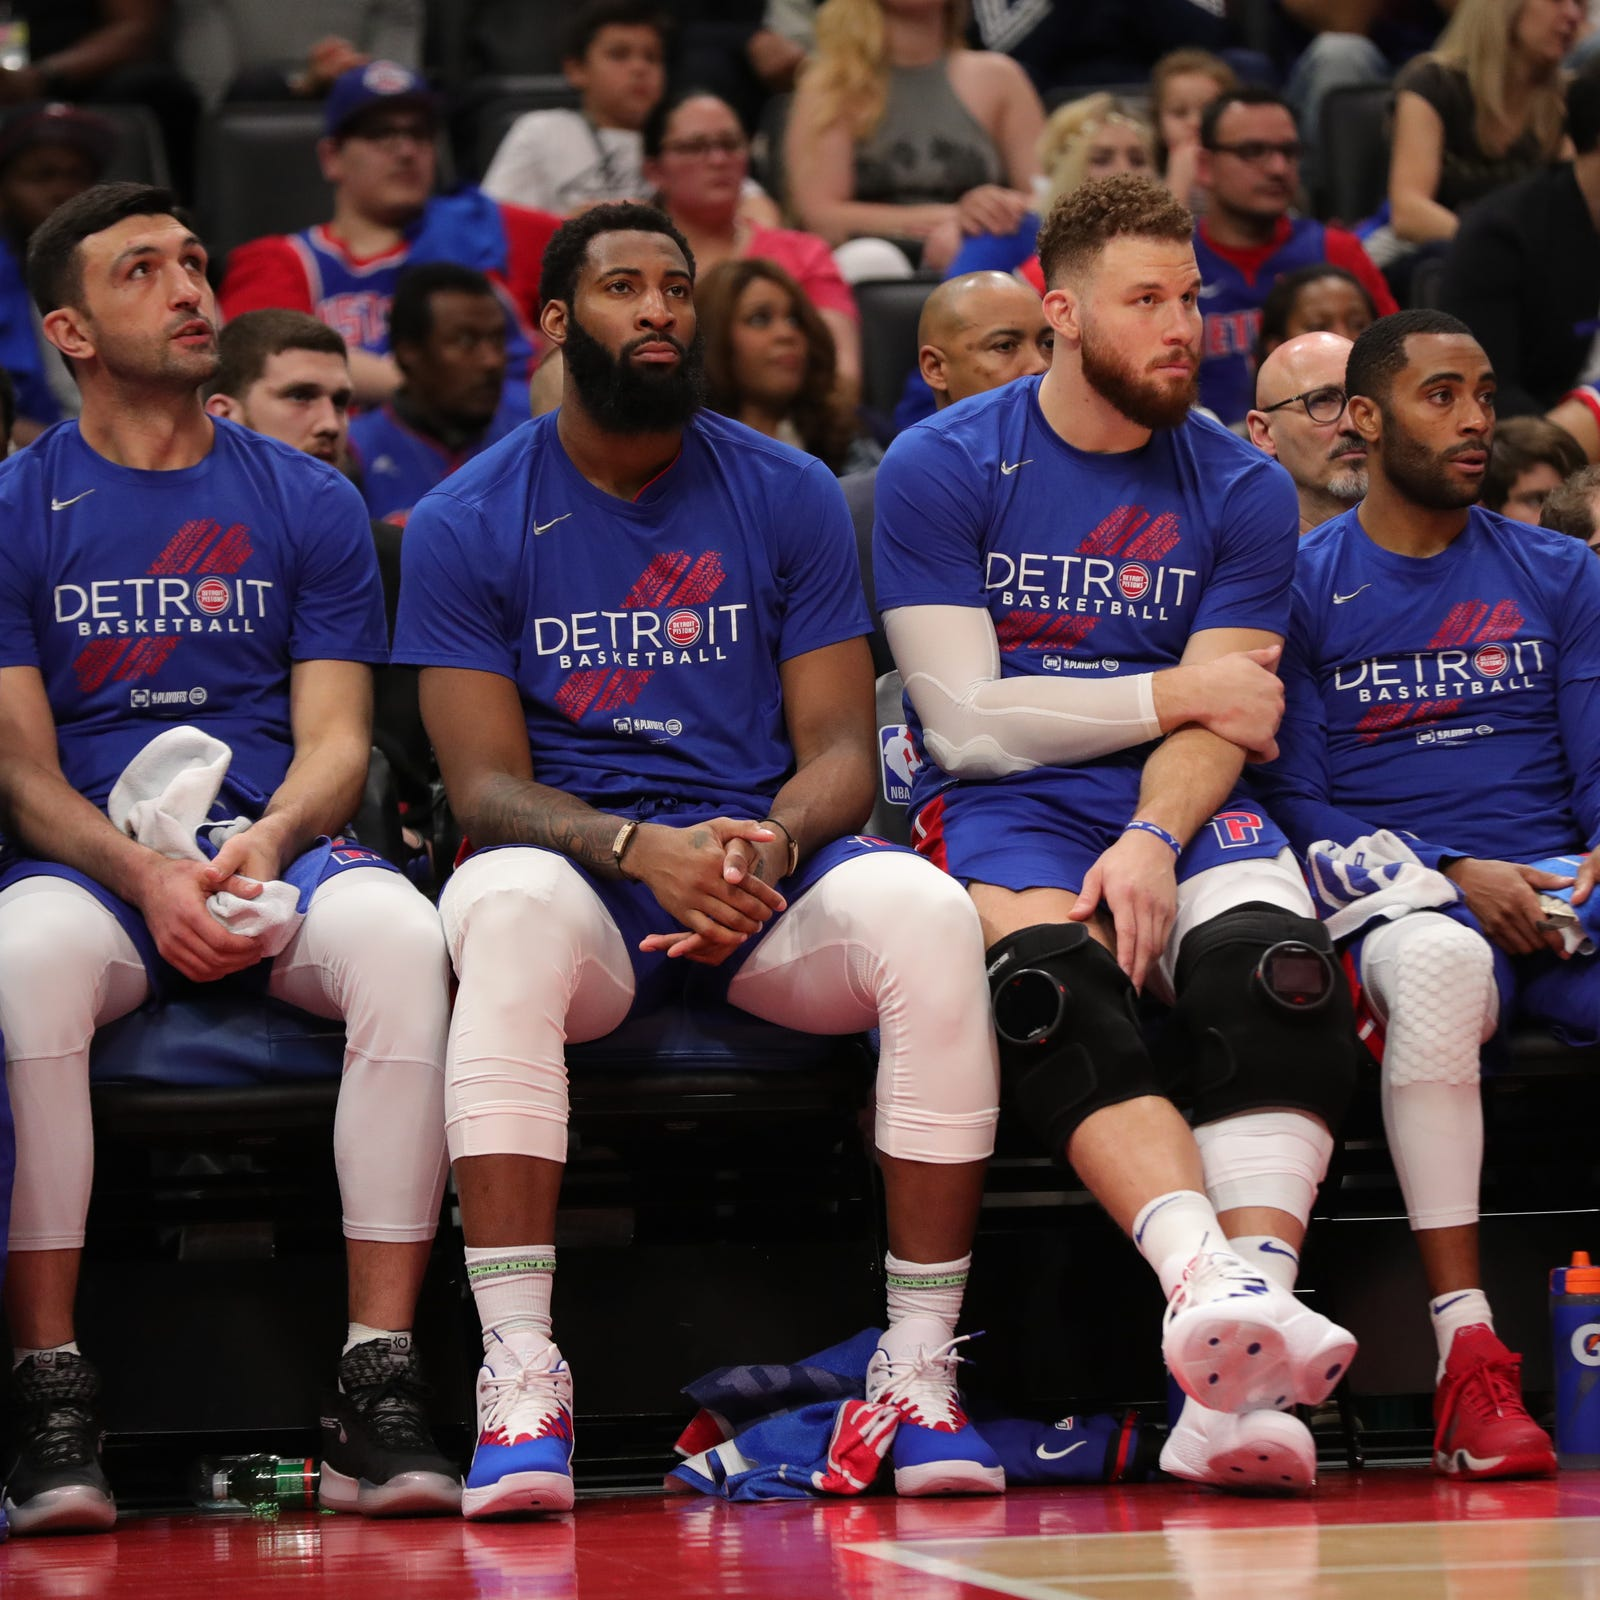 Blake Griffin gives Pistons fans reason to cheer. Andre Drummond took it away